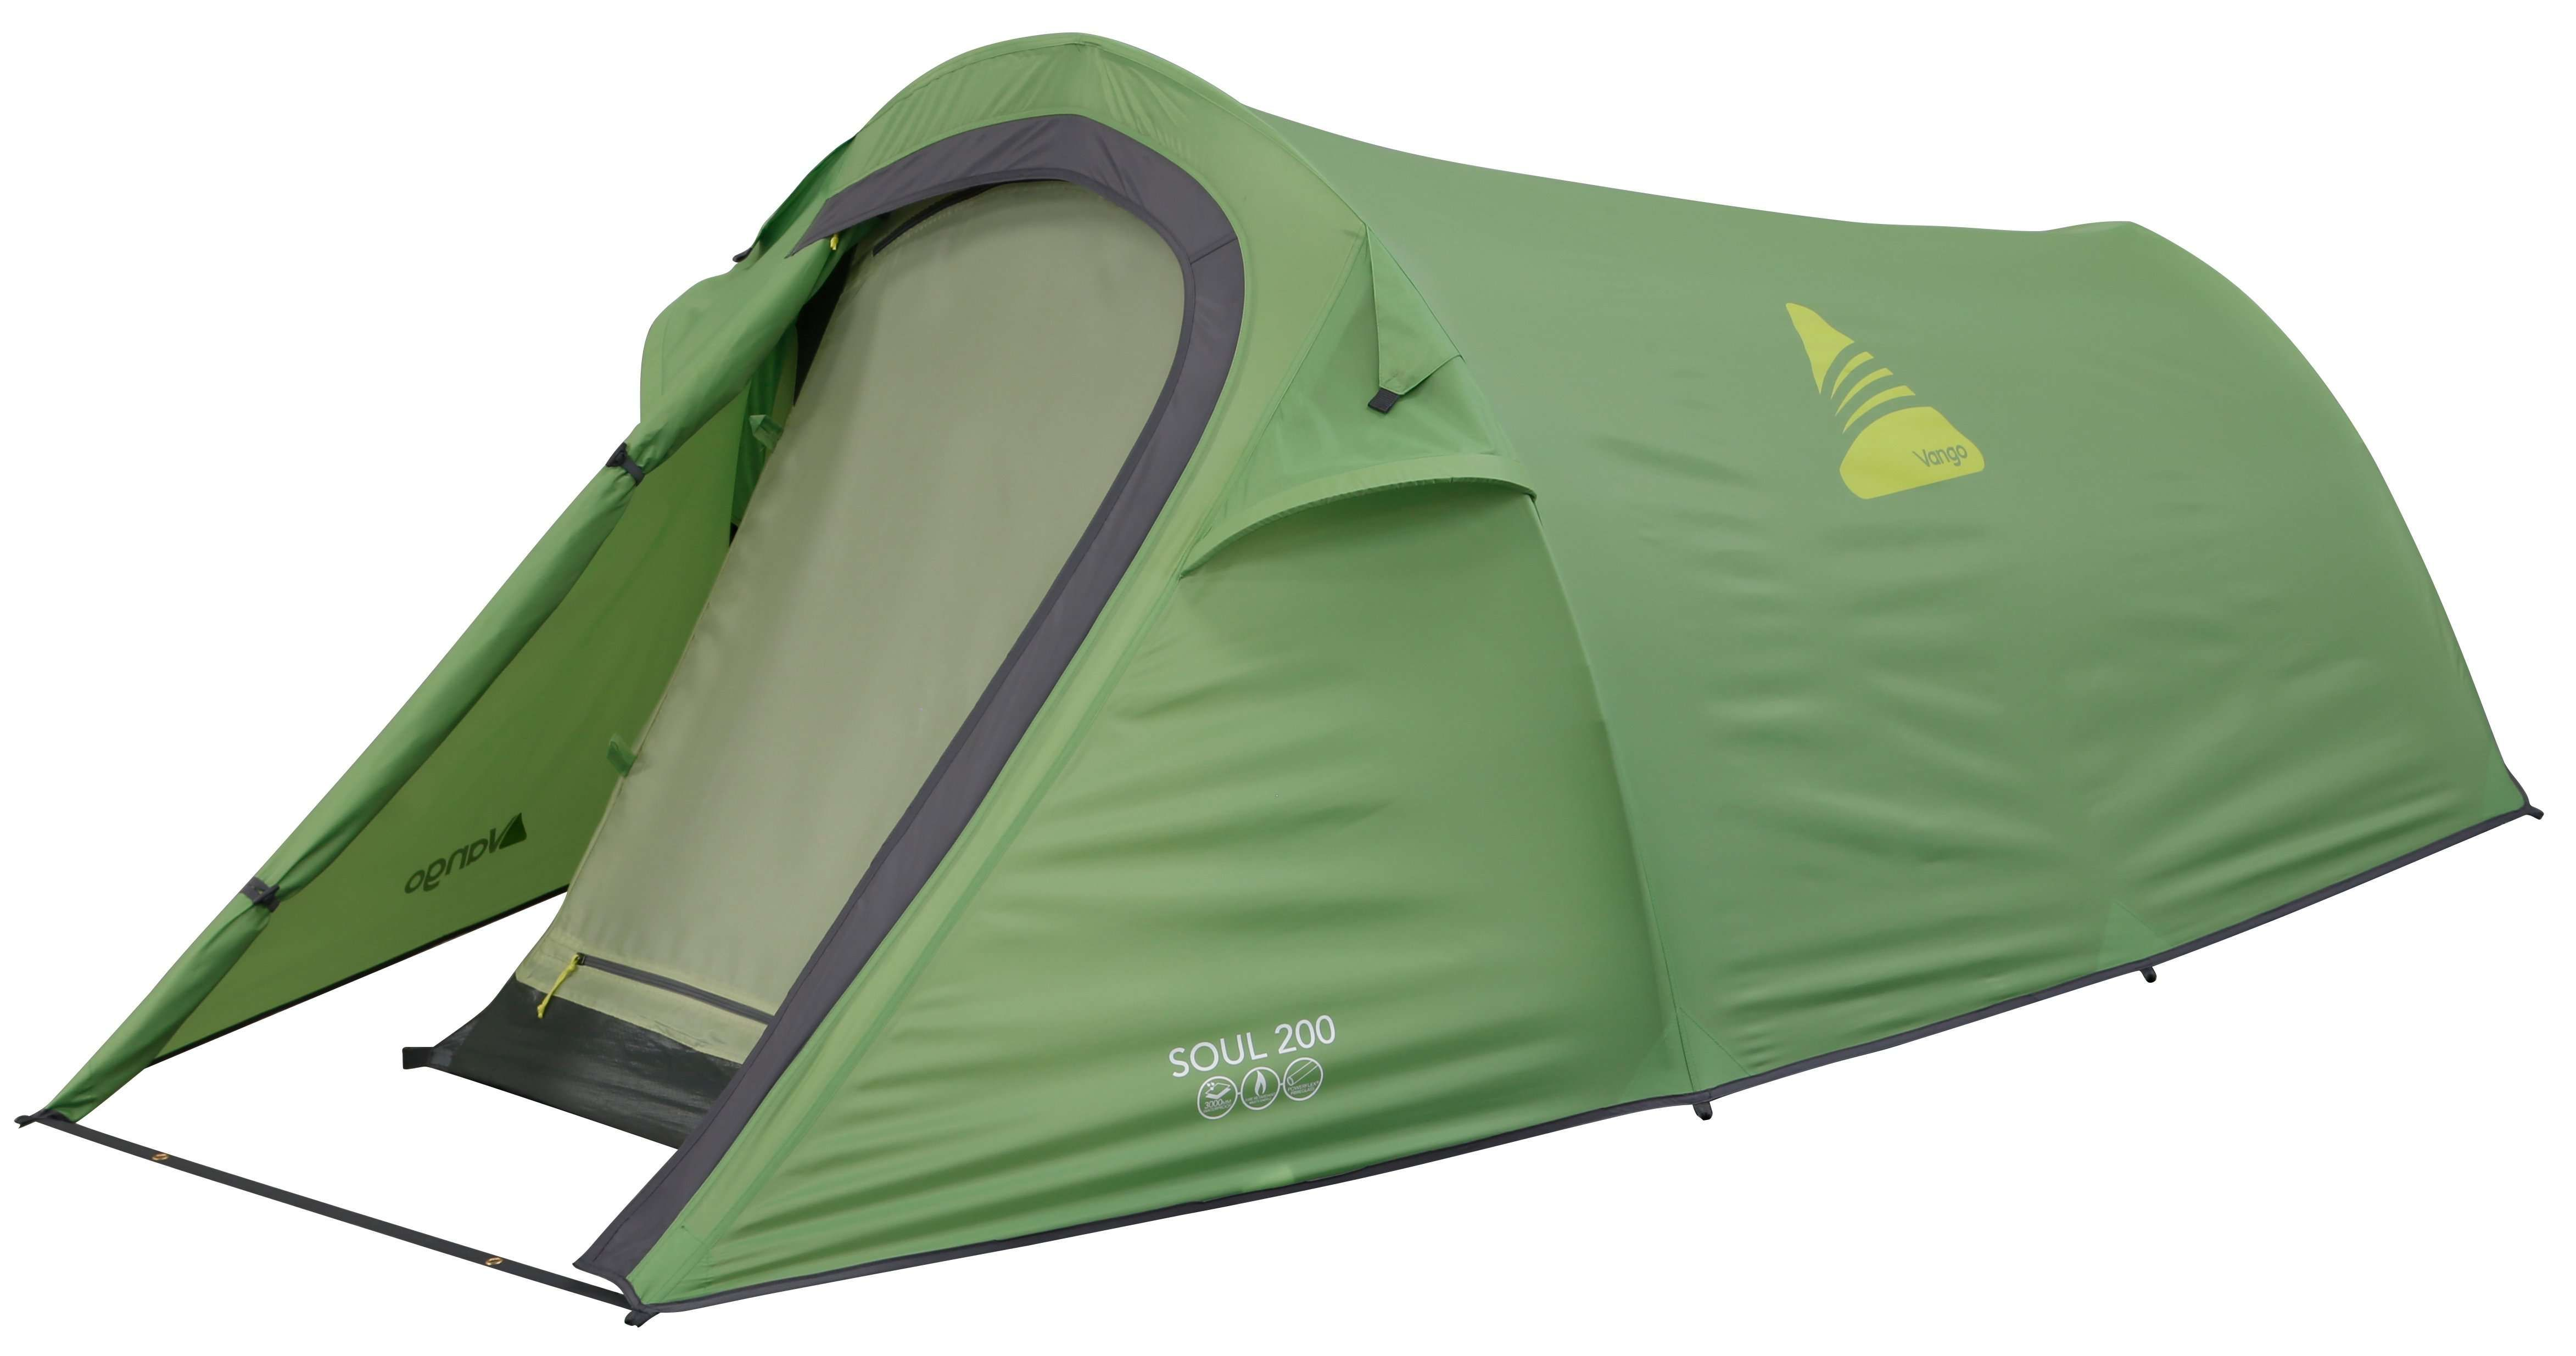 VANGO Soul 200 2 Person Tent - find out more on our site. Millets  sc 1 st  Pinterest & VANGO Soul 200 2 Person Tent - find out more on our site. Millets ...